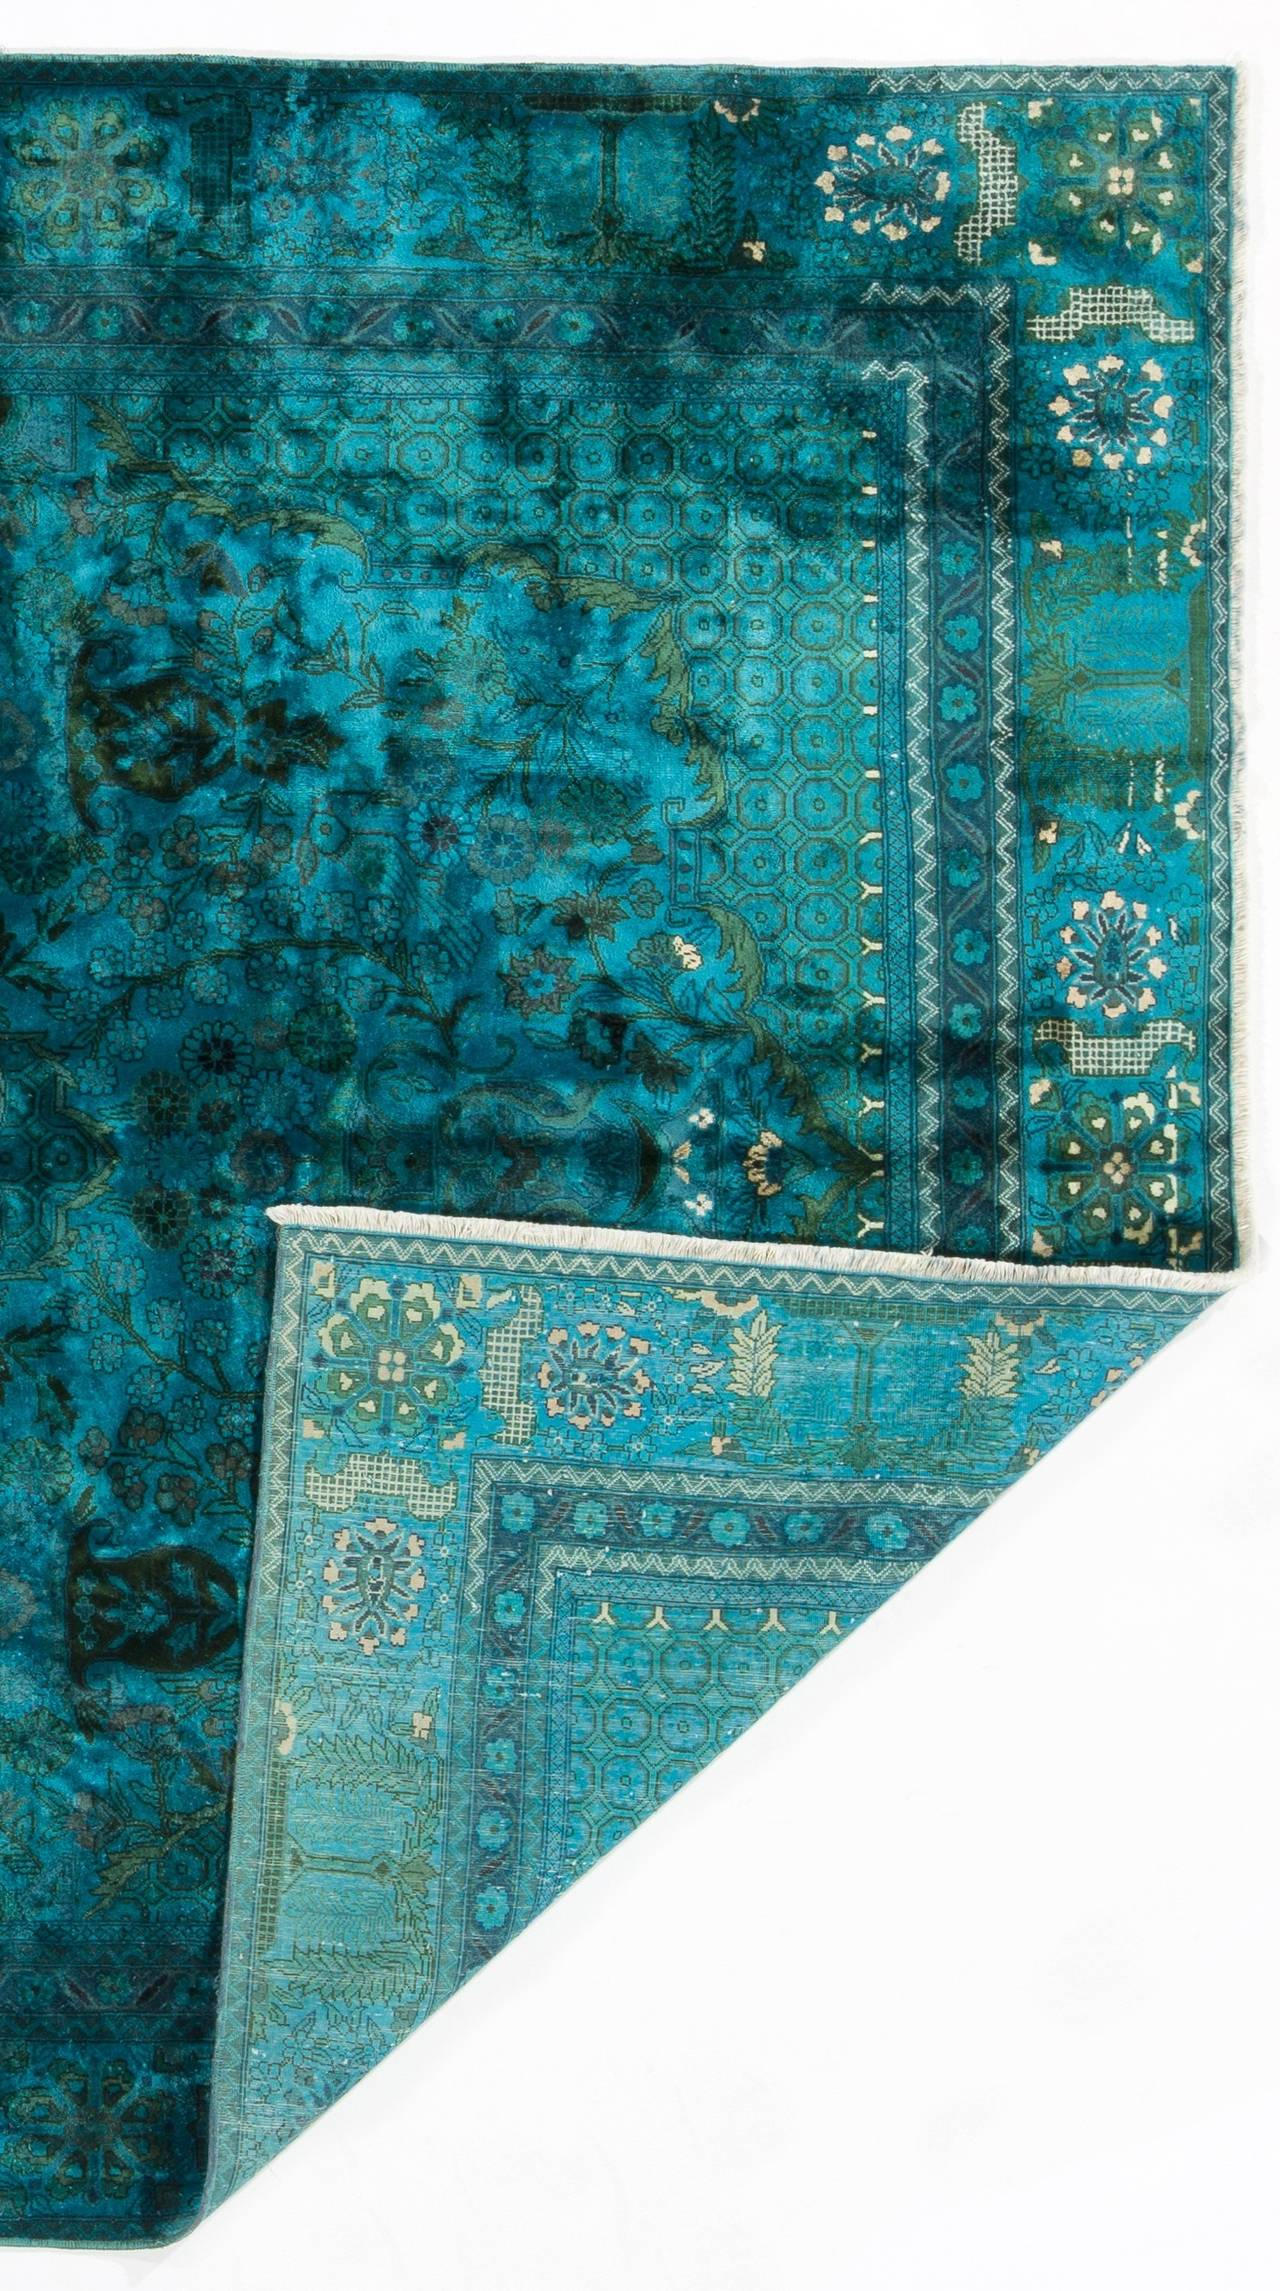 Silk And Cotton Indian Rug In Teal Blue Color For Sale At